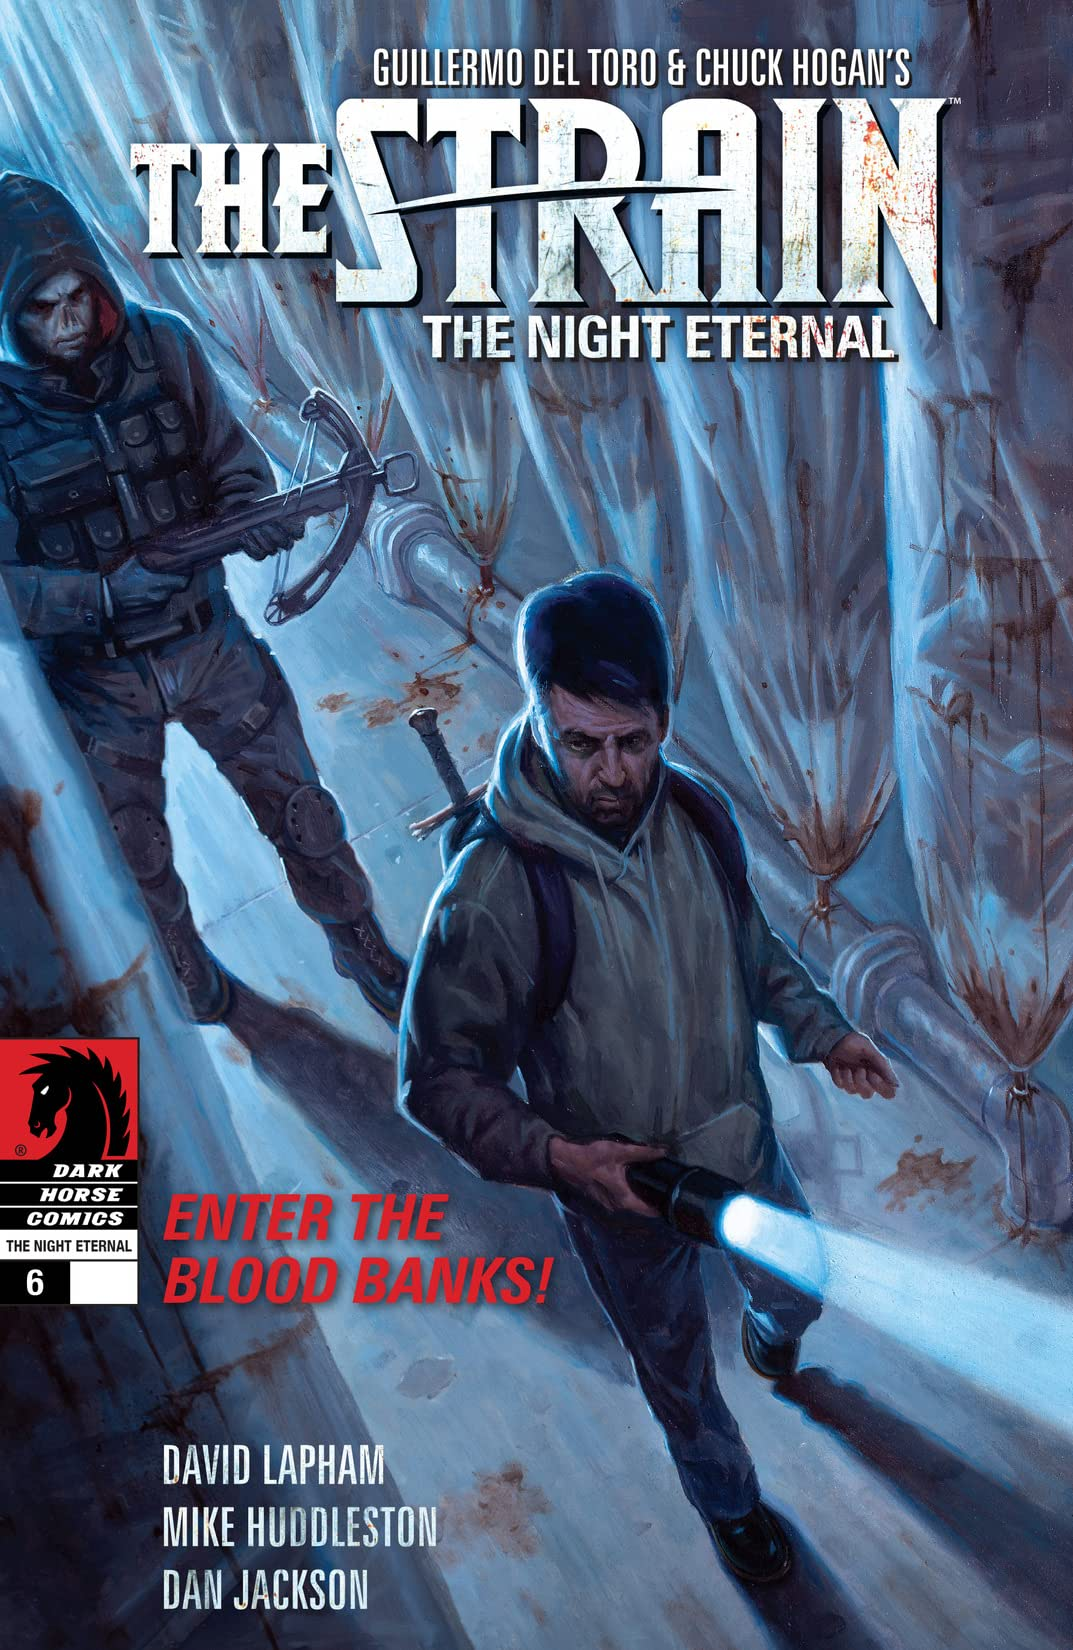 The Strain: The Night Eternal #6